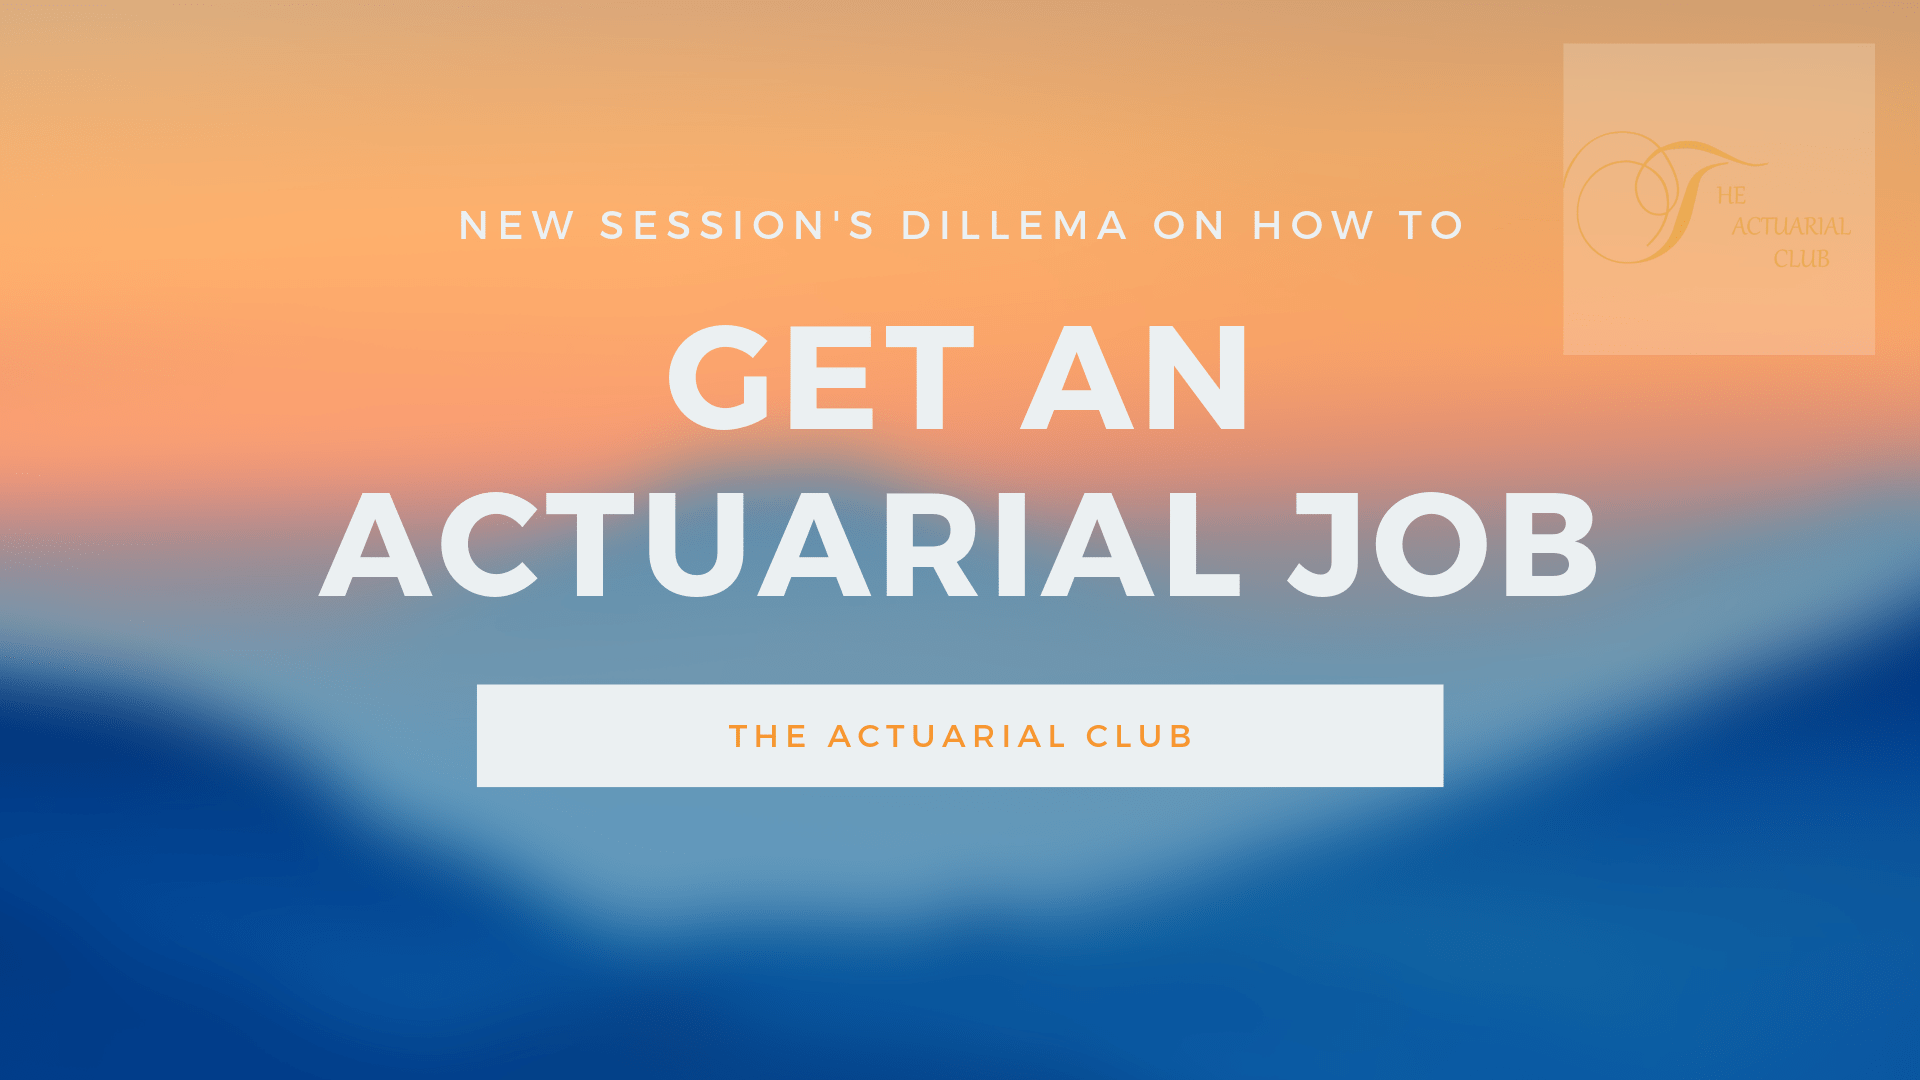 Actuarial job preparation, get an actuarial job